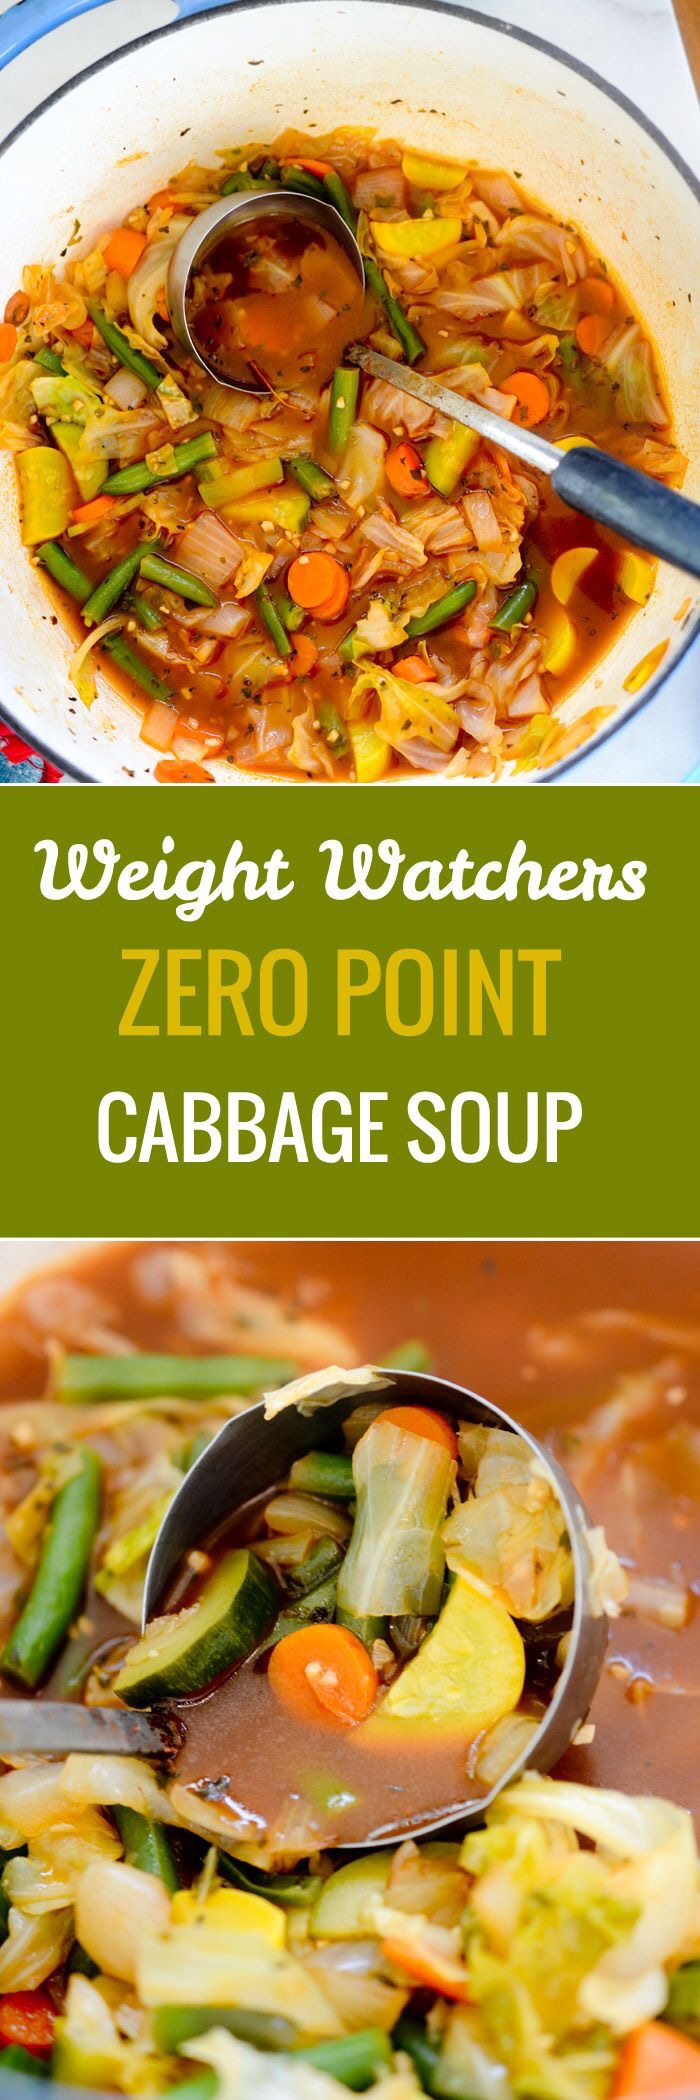 Pin by eleese lark on cuisine pinterest ww recipes food and weight watchers zero point cabbage soup you can eat as much of this weight watchers cabbage soup as you like because its only 22 calories per nvjuhfo Images